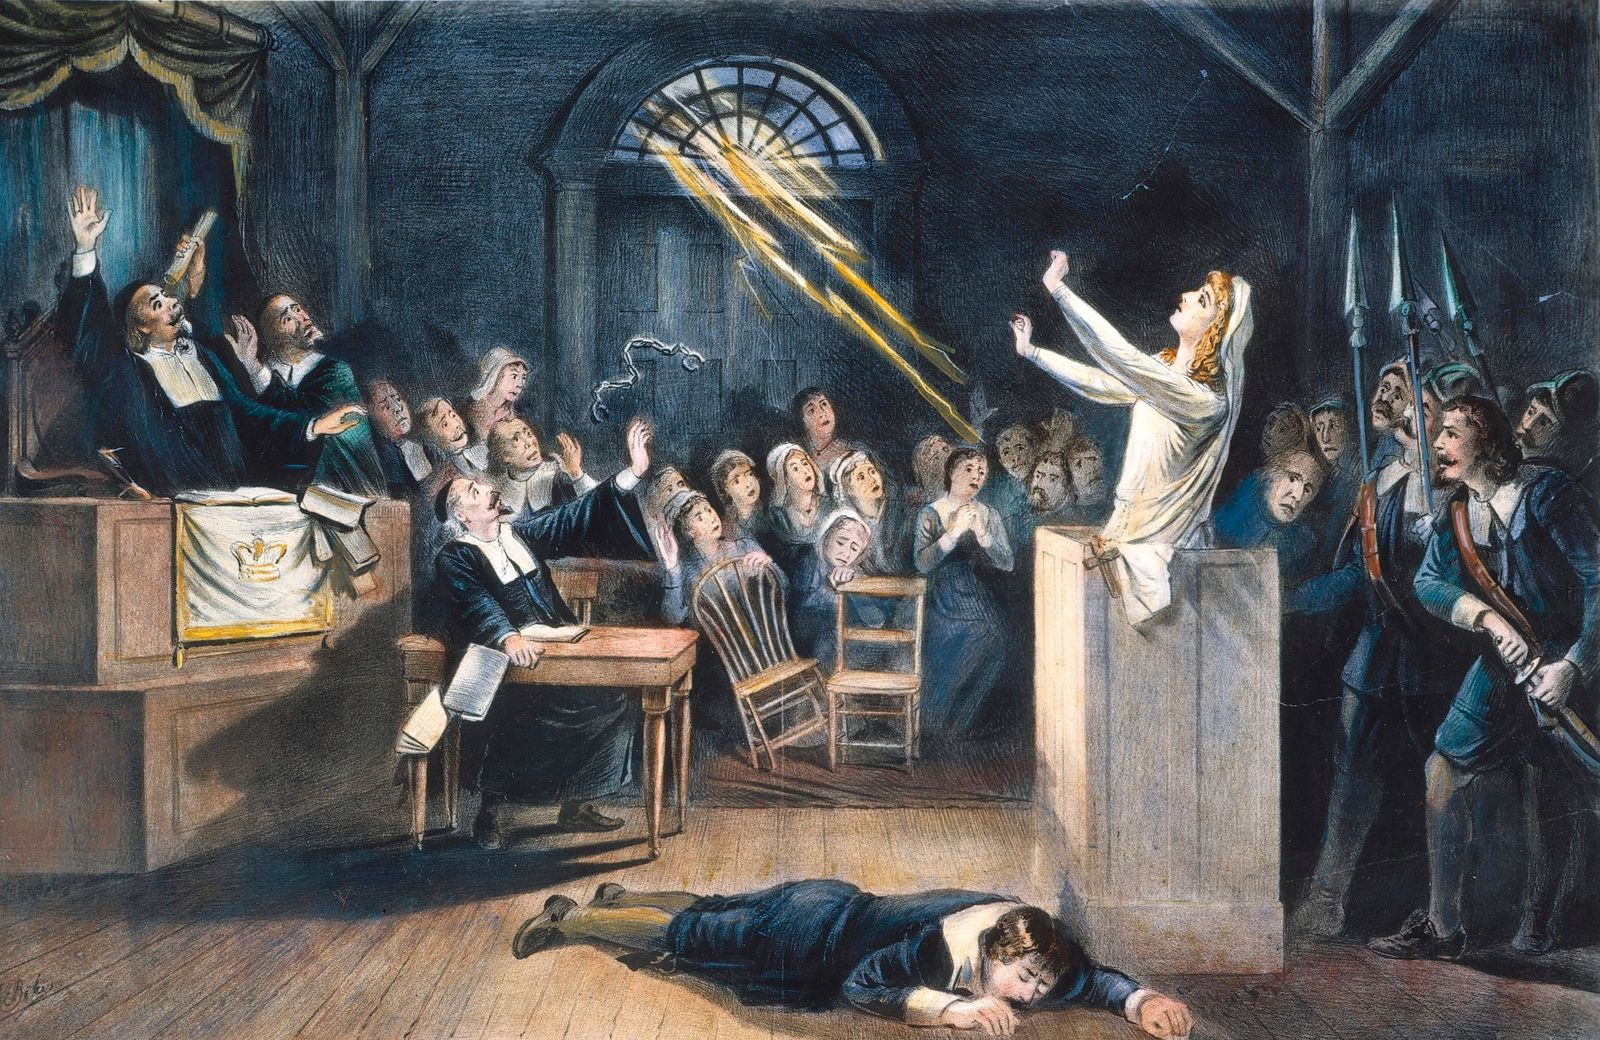 SALEM WITCH TRIAL, 1692. A witch trial at Salem, Massachusetts, in 1692: lithograph, 19th century.